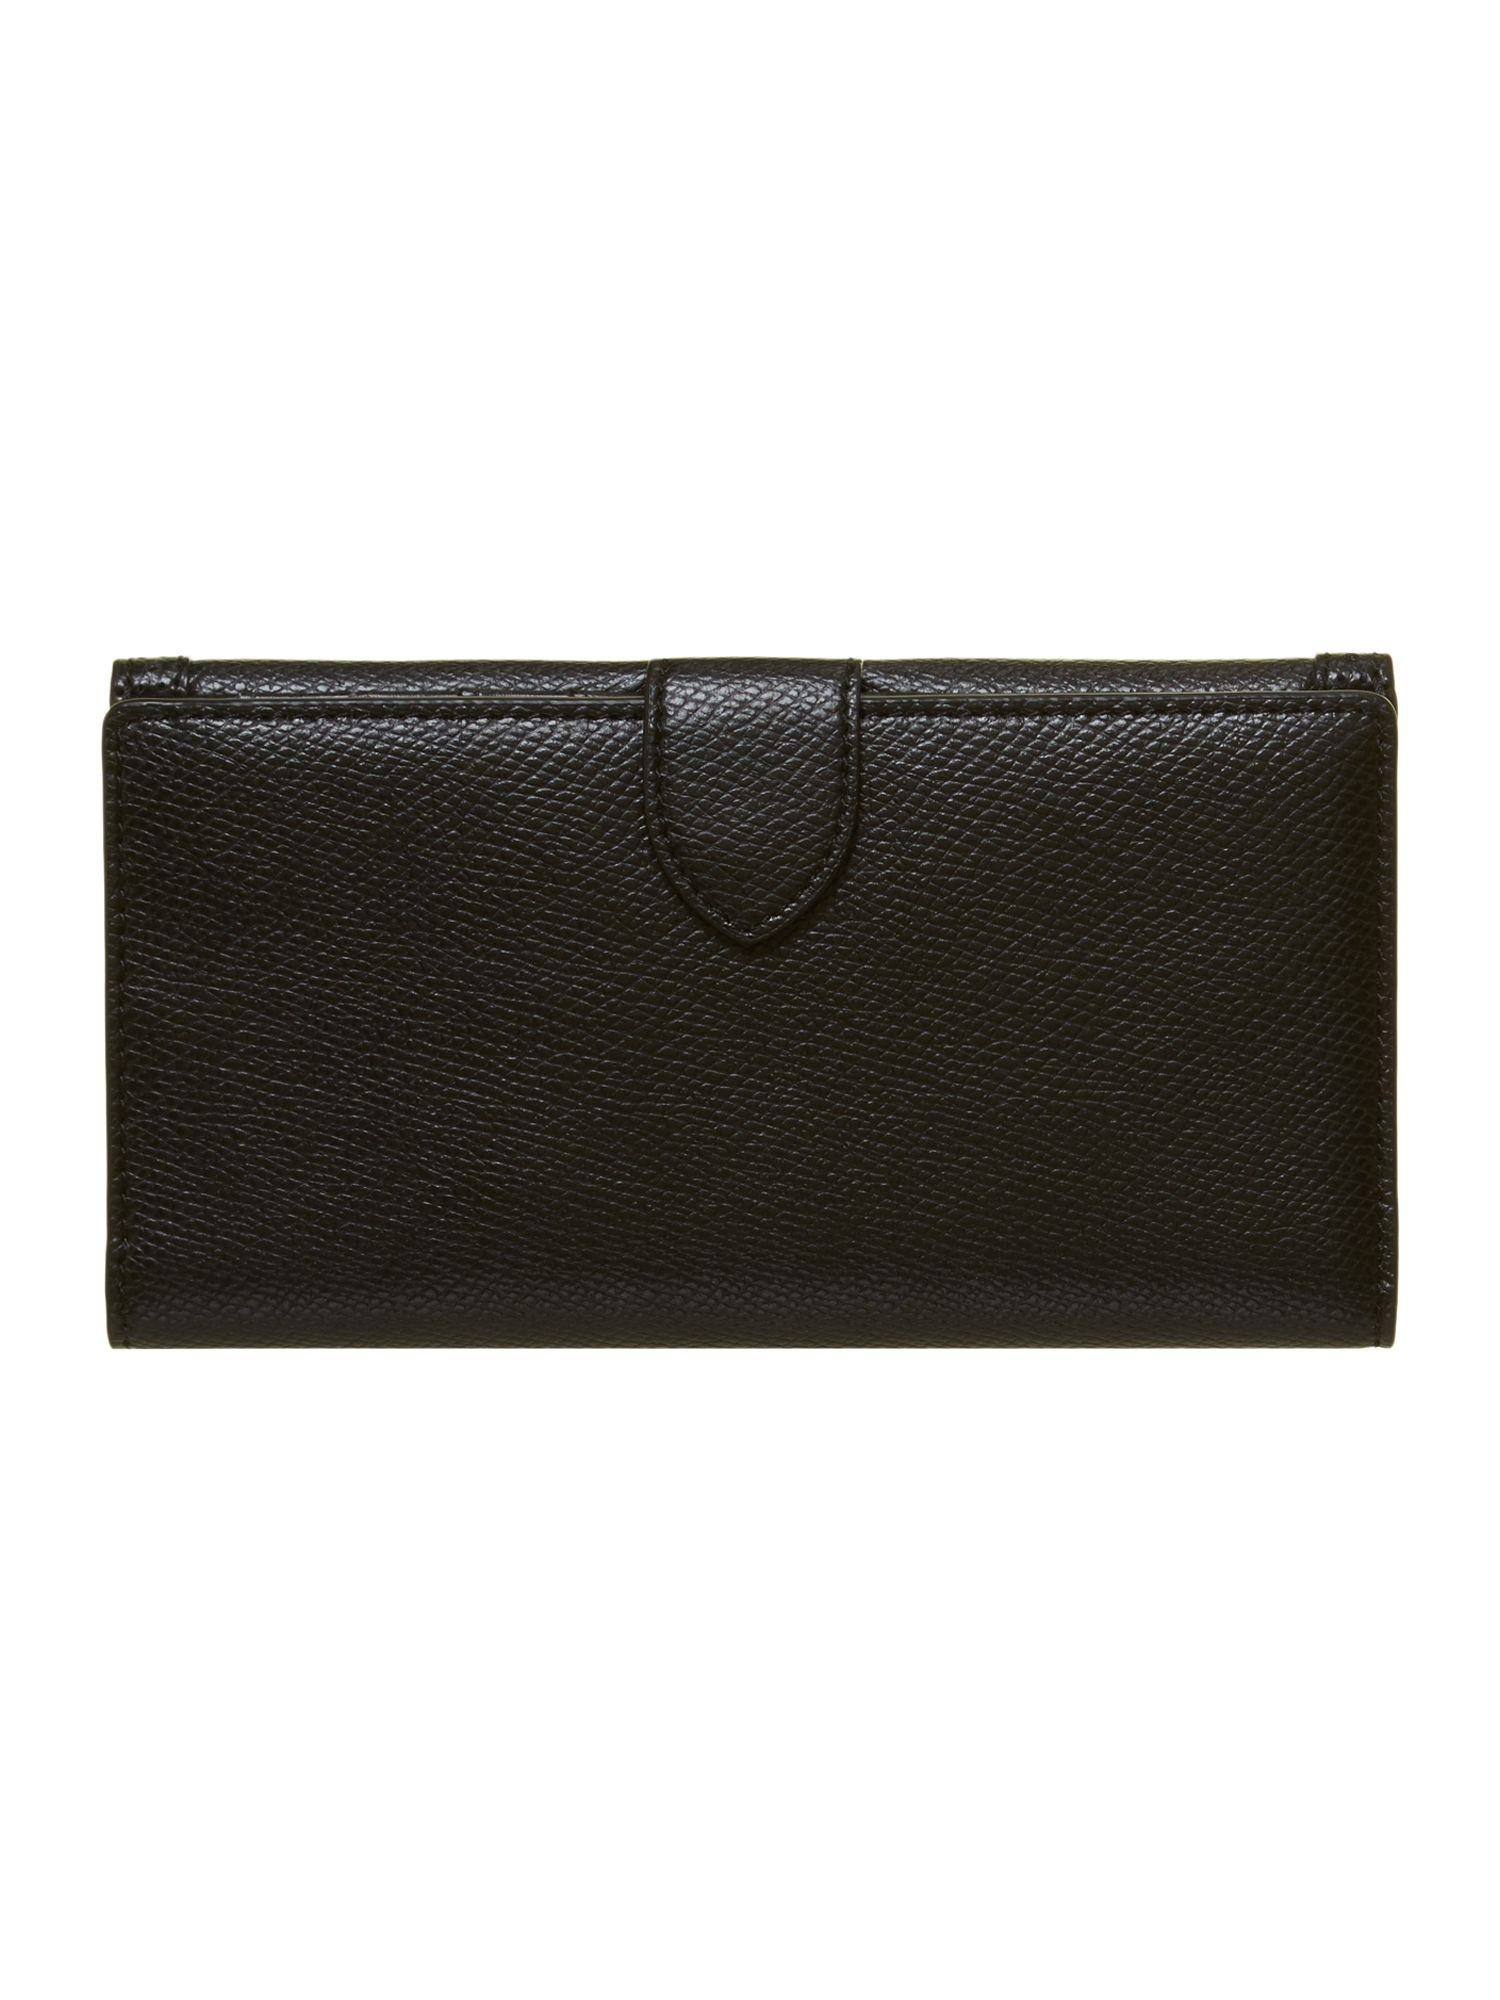 Black flap over purse